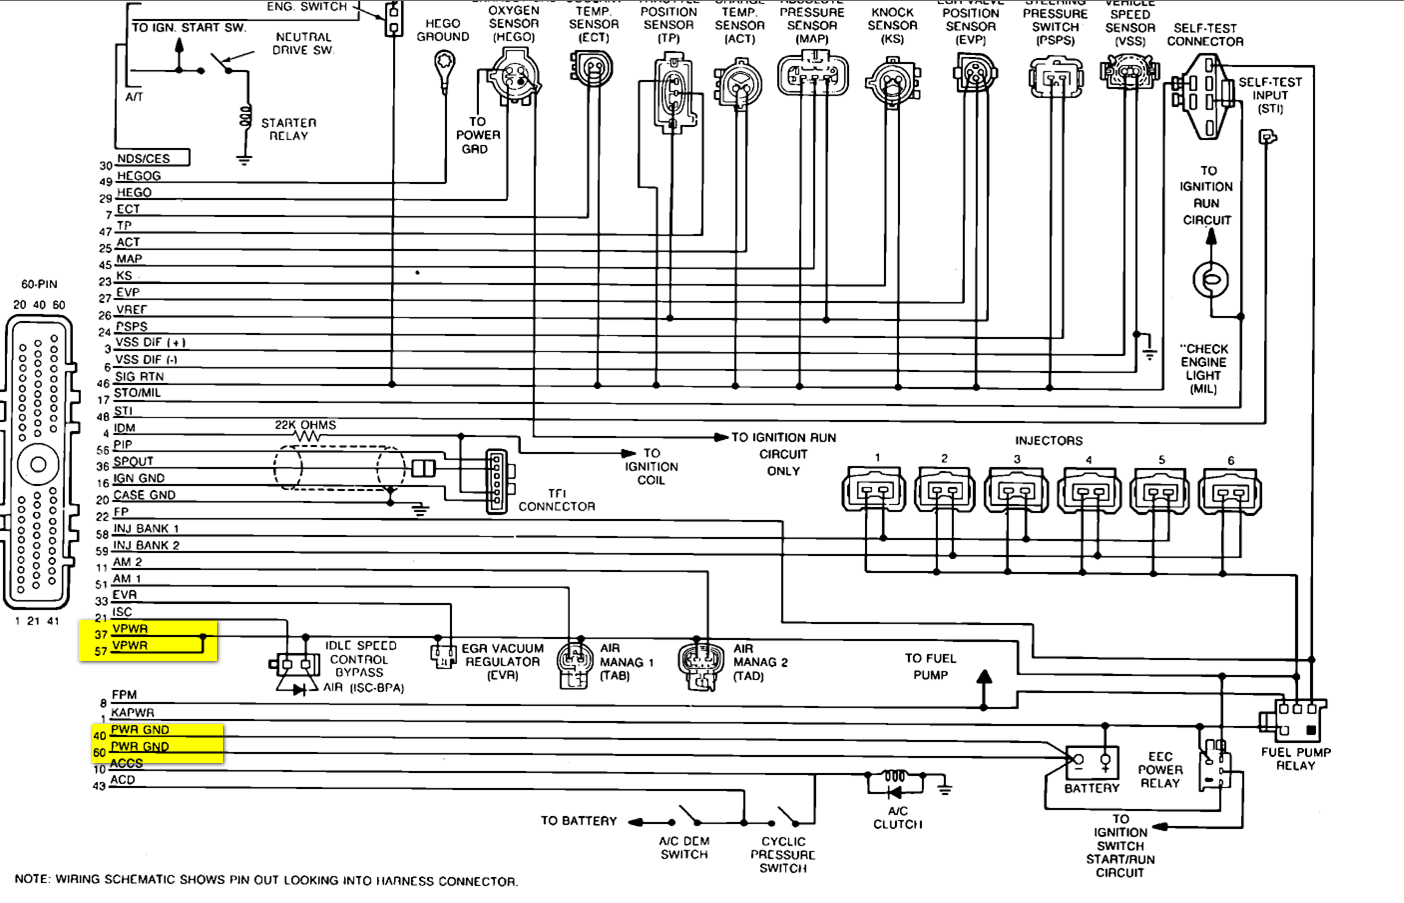 Ford F 150 Injector Wiring Diagram | Manual E-Books - Fuel Injector Wiring Diagram